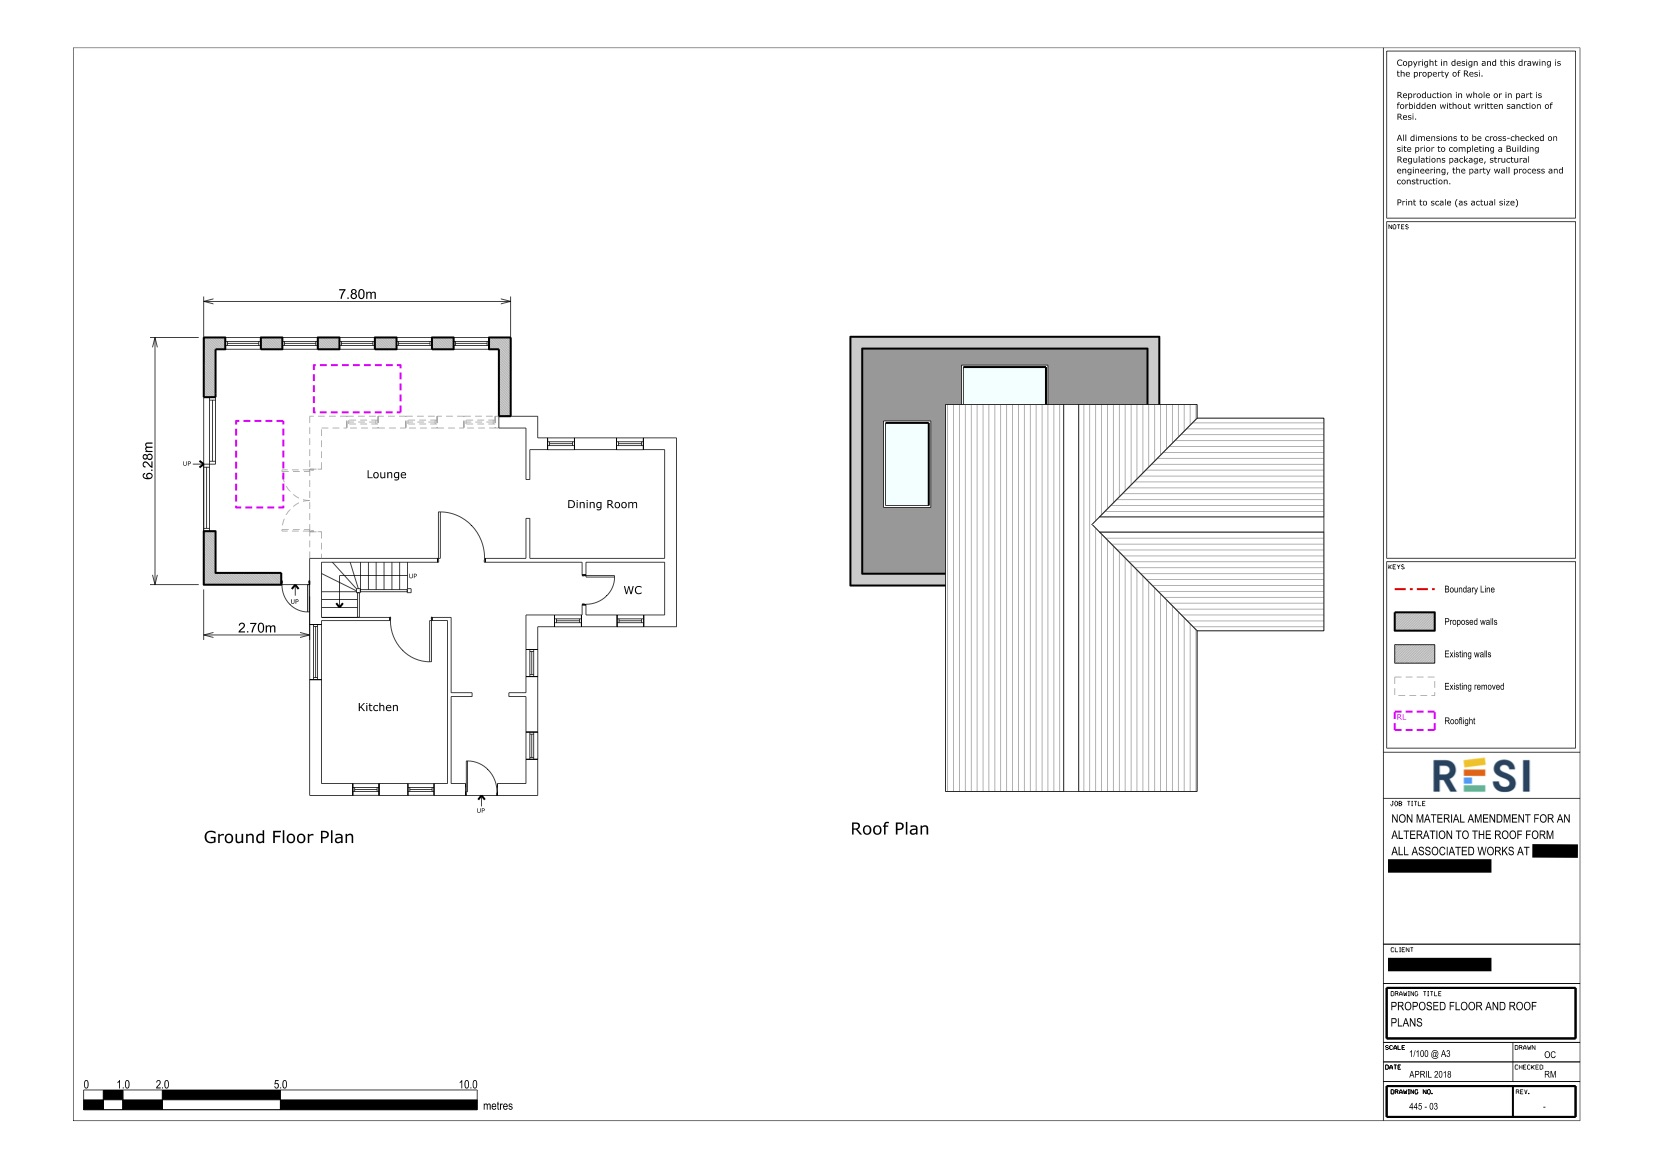 78 half acre road   architectural drawings   ground floor and roof plans